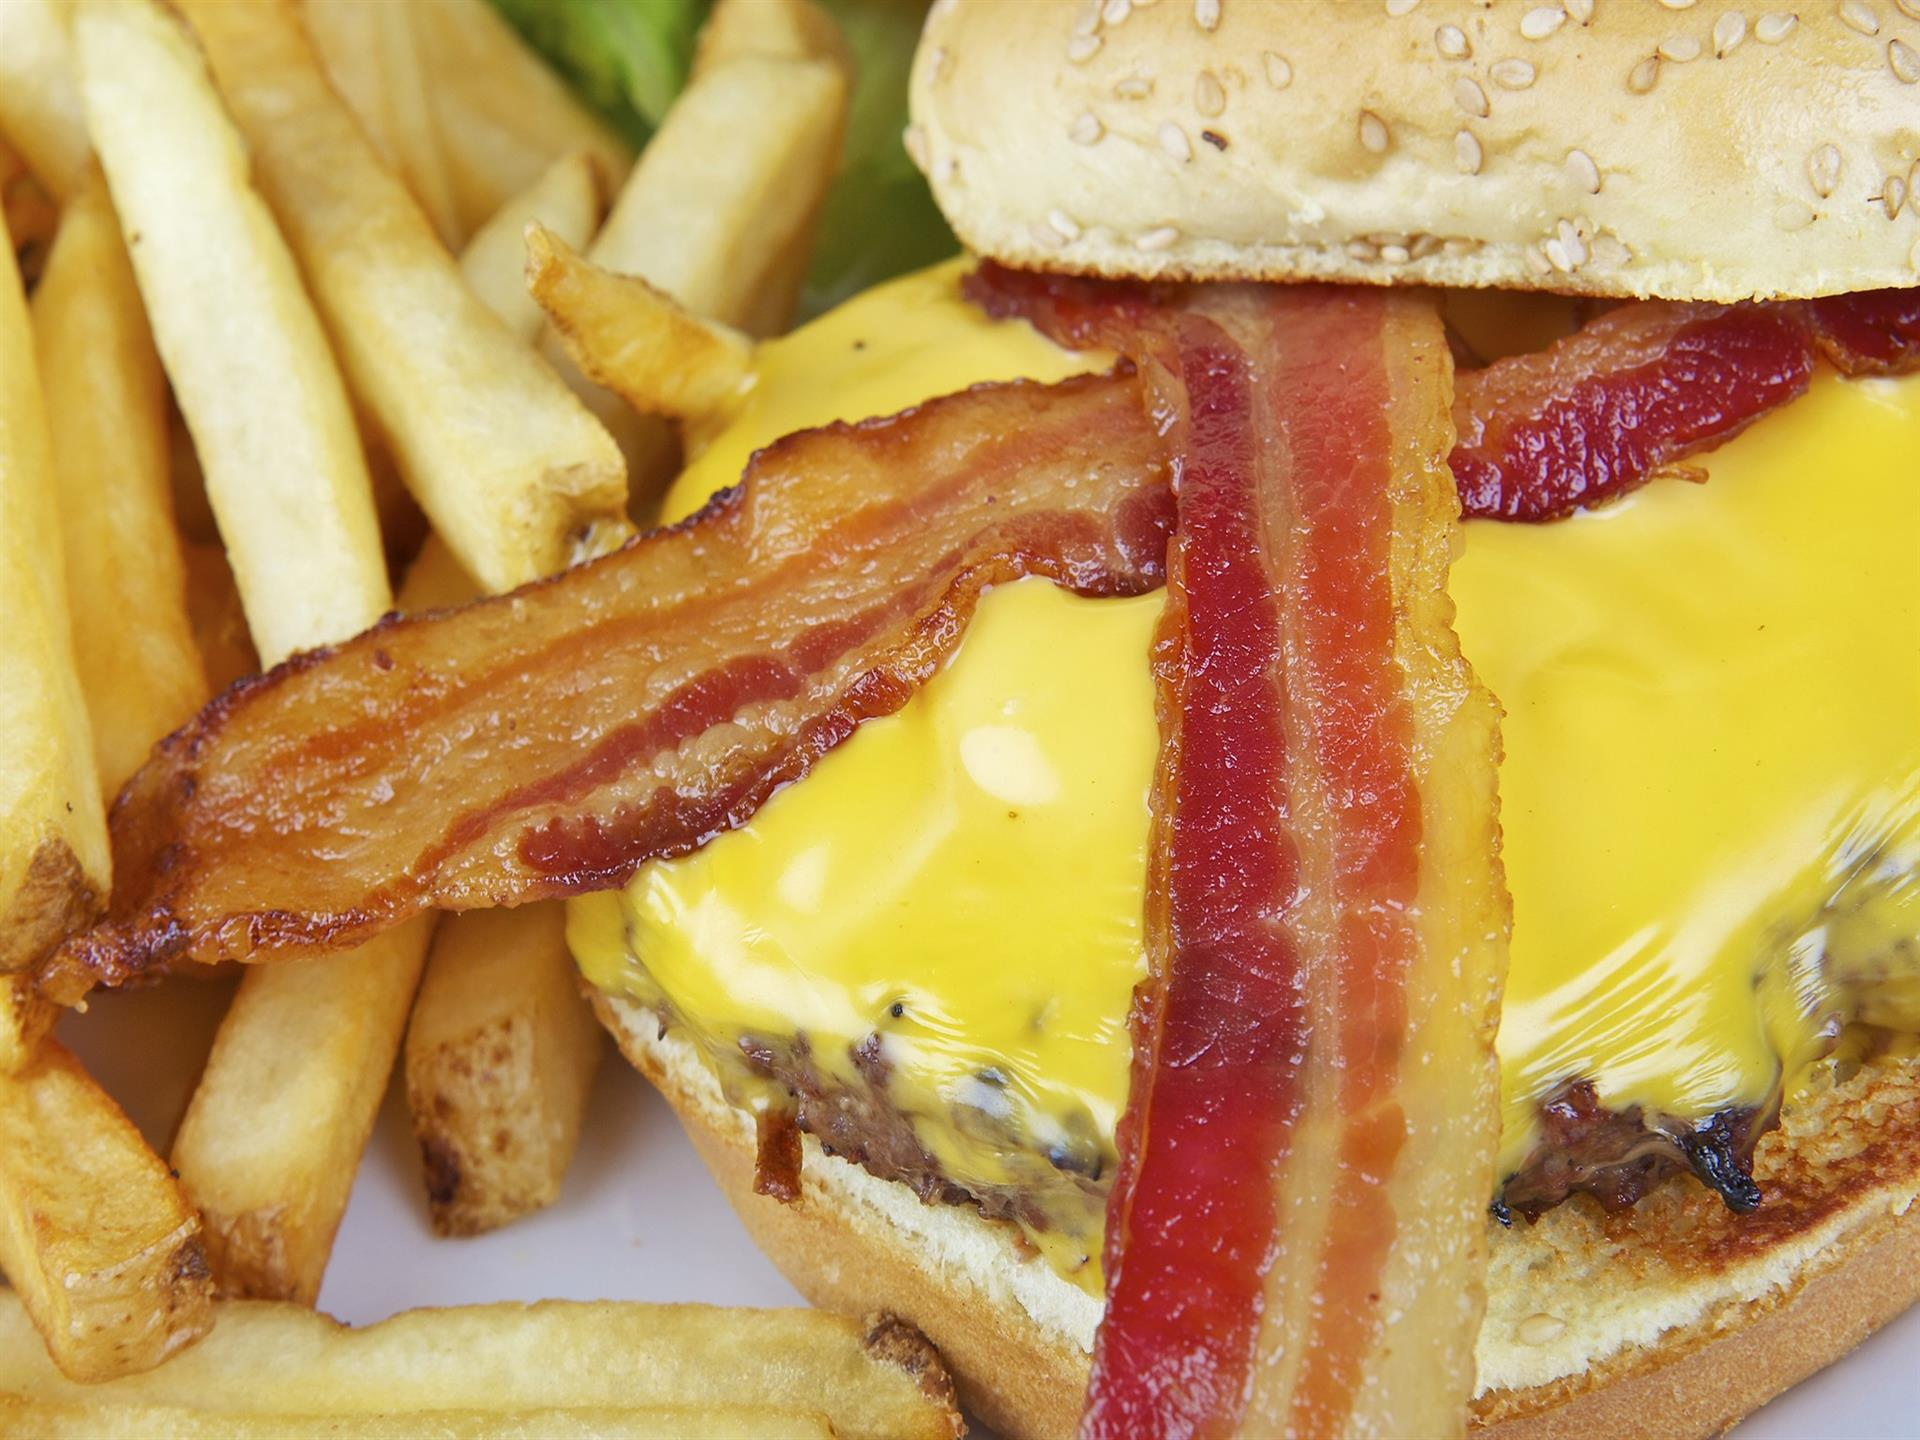 Bacon cheeseburger on a seeded bun with a side of French fries